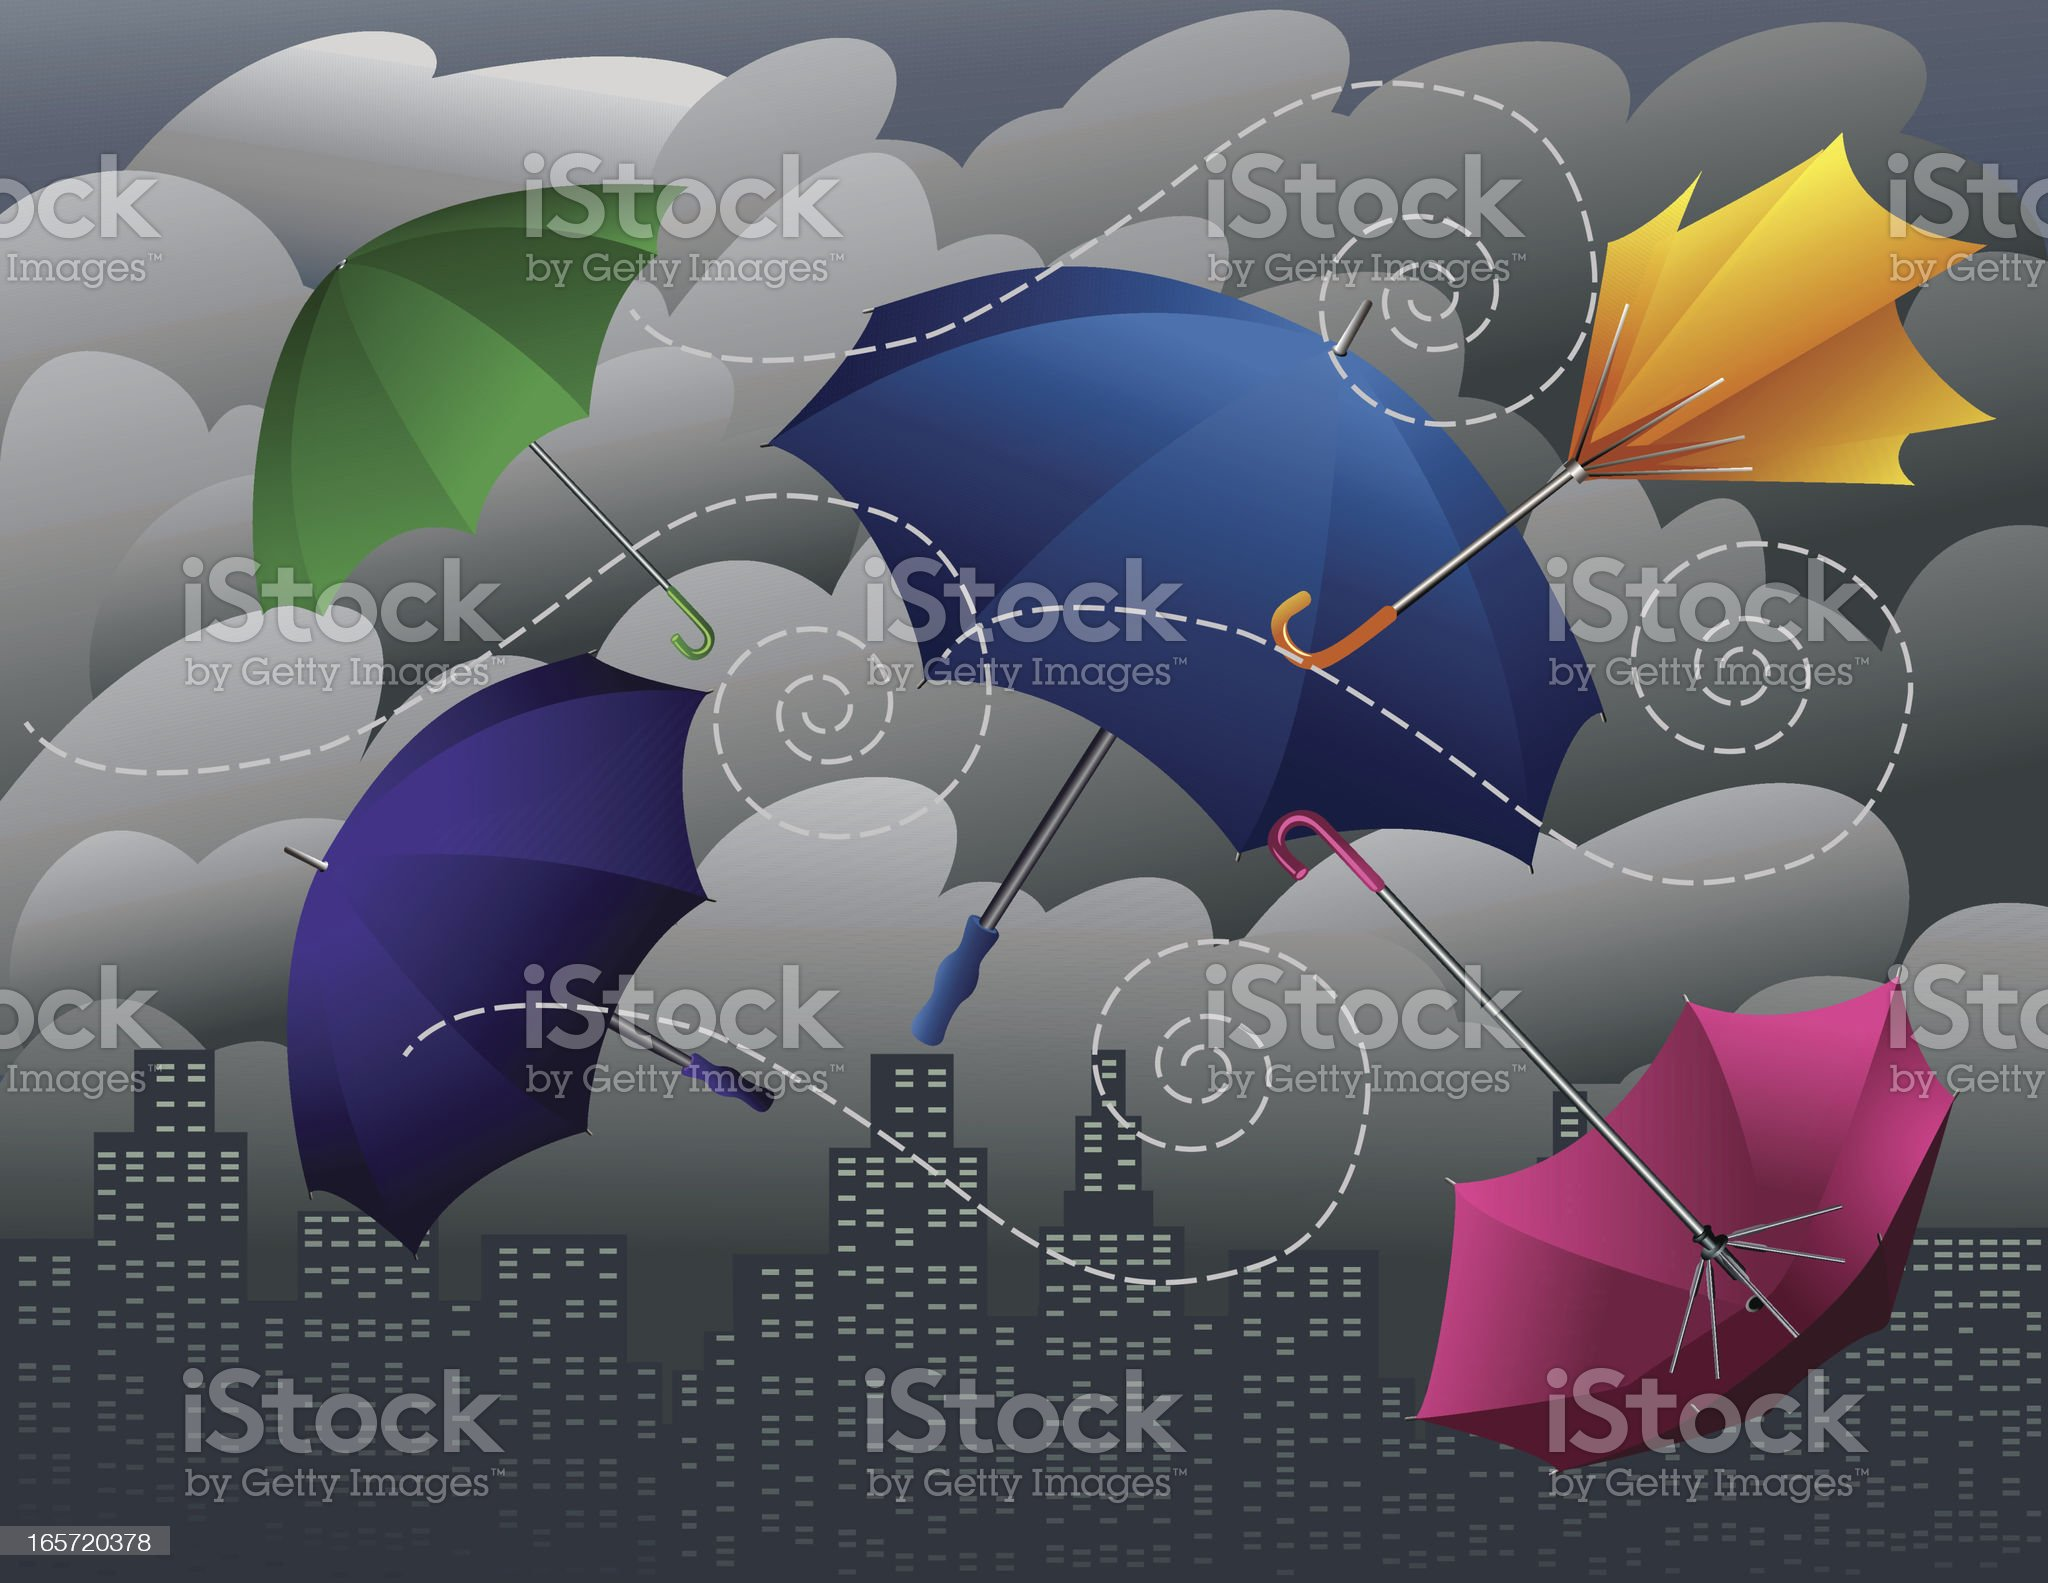 Stormy Umbrellas royalty-free stock vector art